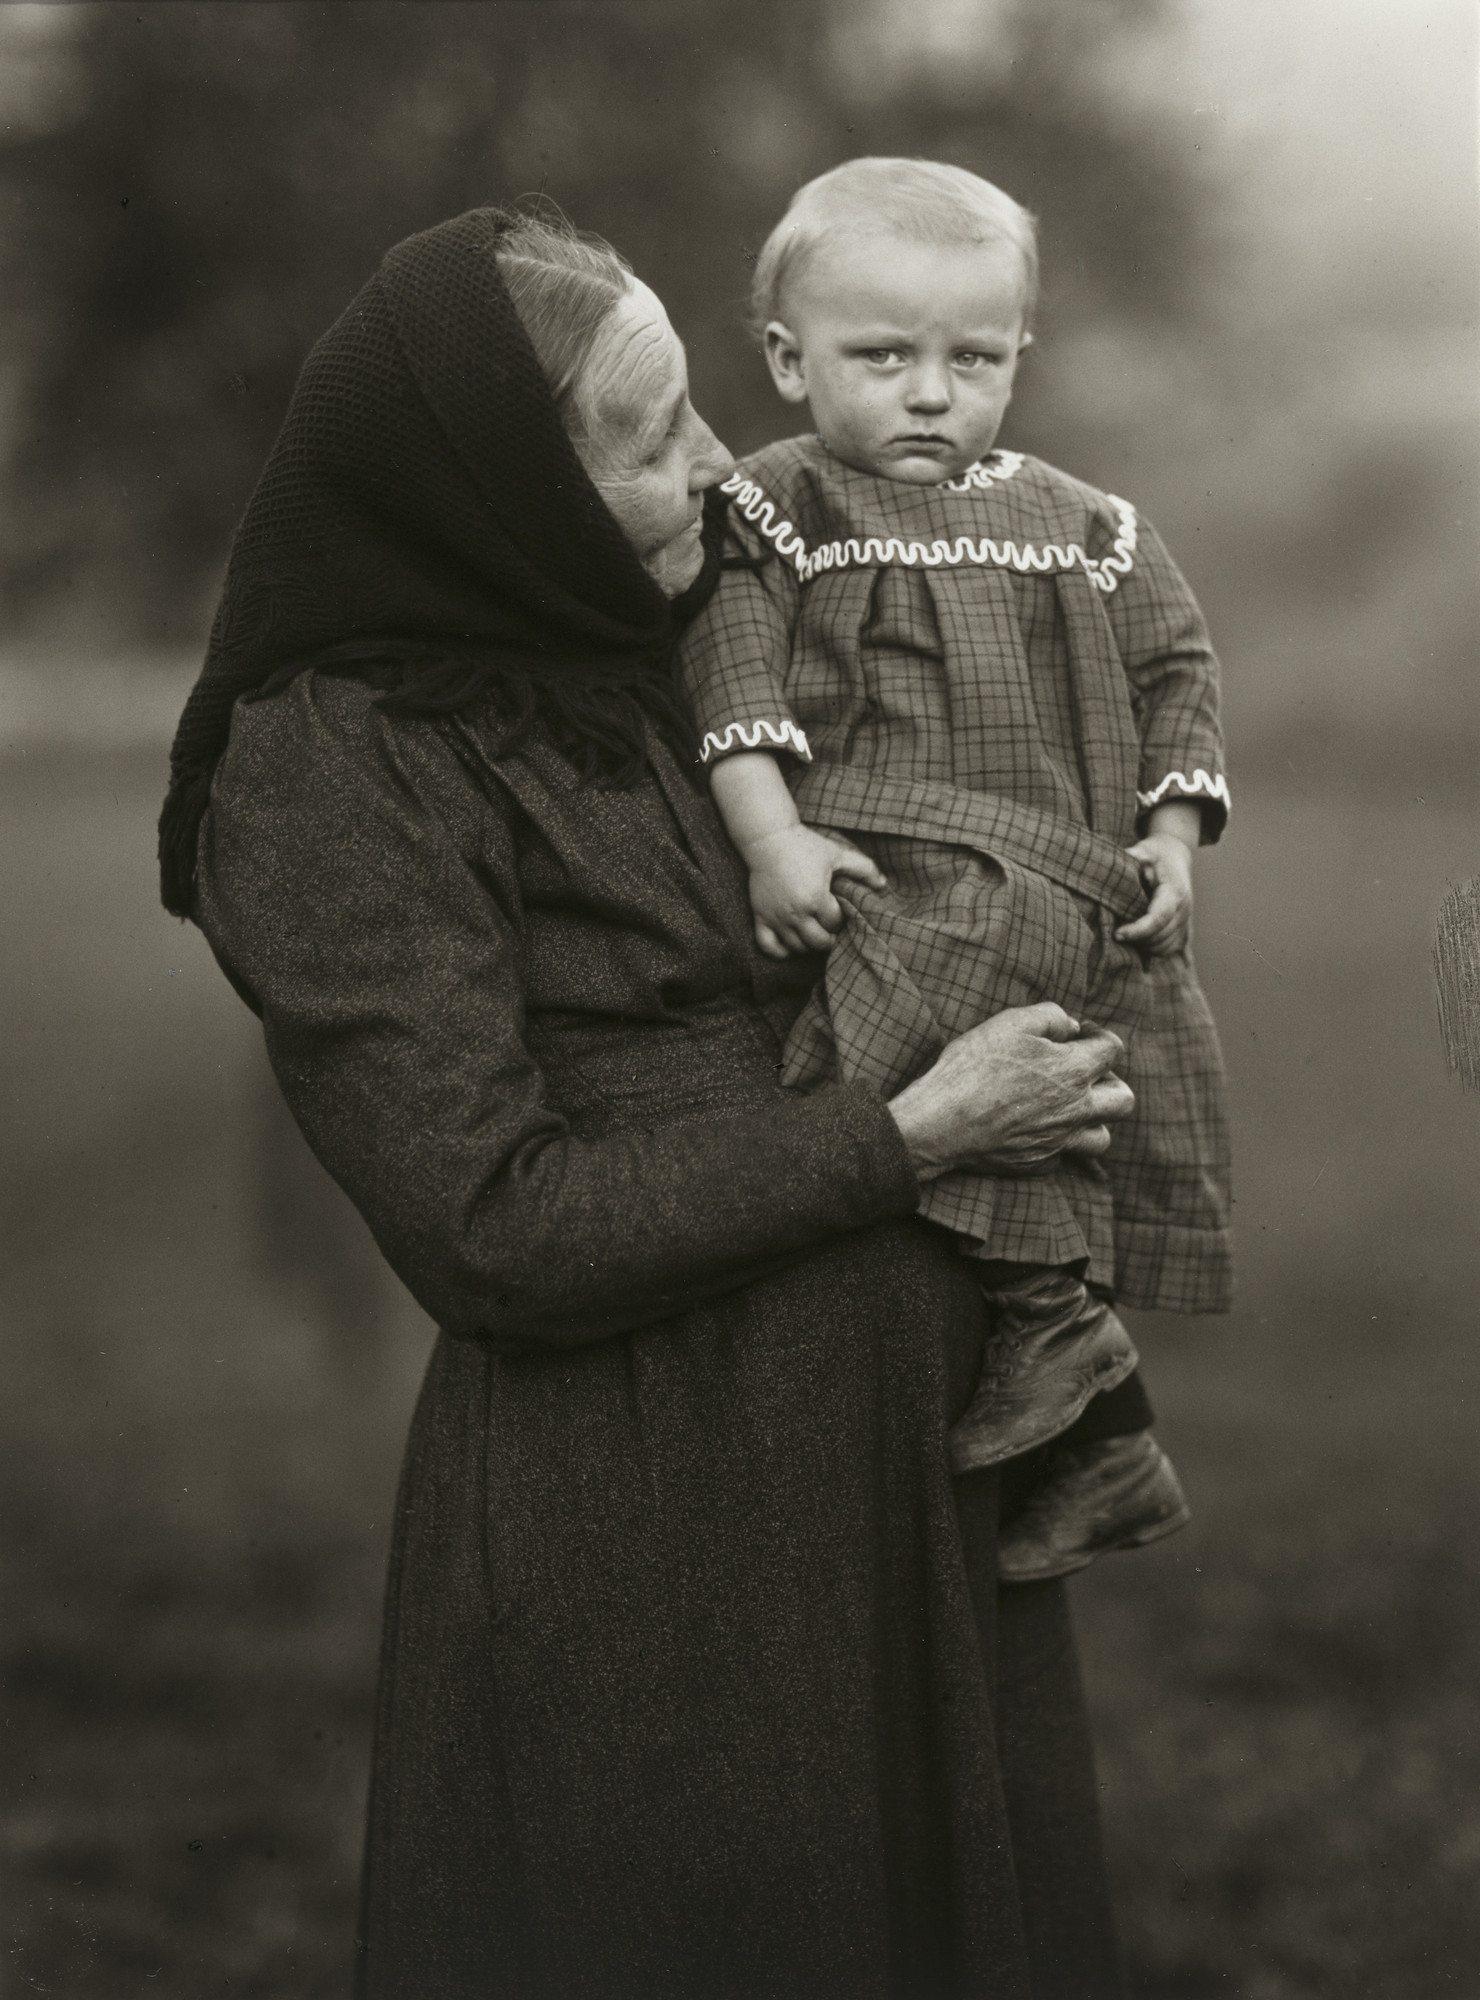 August Sander. Grandmother and Grandchild. 1913